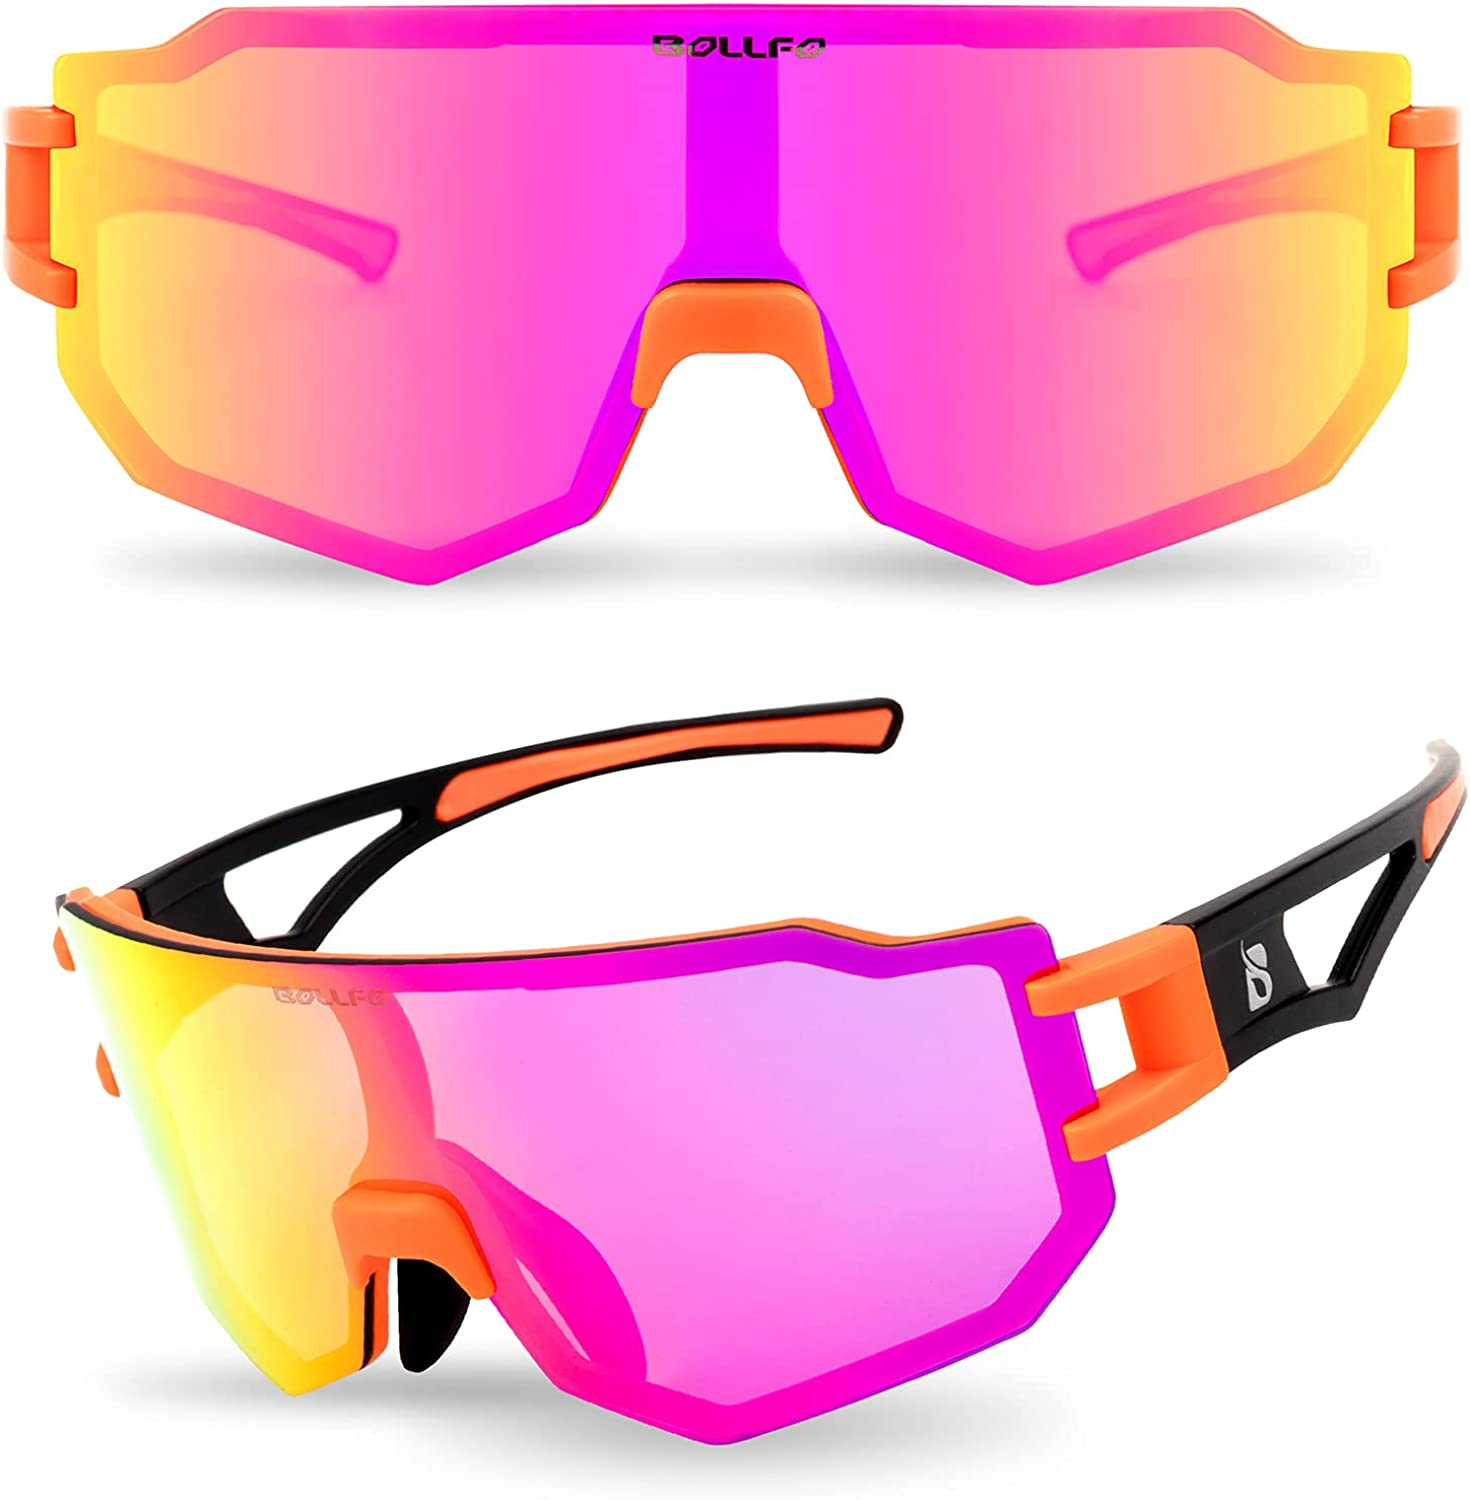 Sports Glasses Cycling for Men Sunglasses Women Now free shipping W Max 61% OFF Unisex